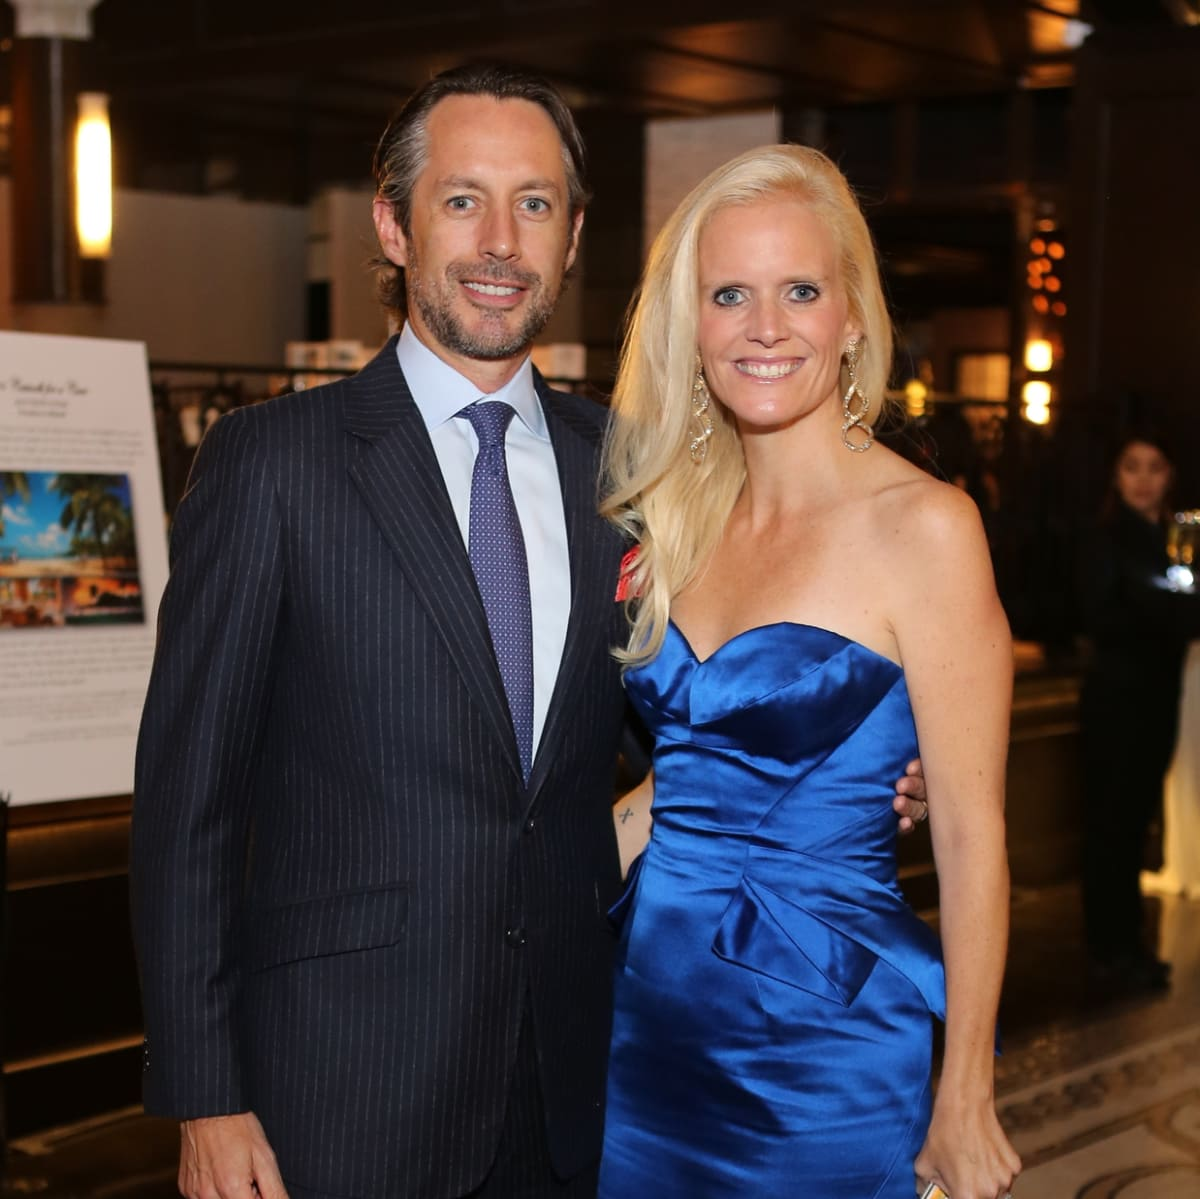 News, Shelby, Catwalk for a Cure, Nov. 2015, Laura Lear, Rick Lear